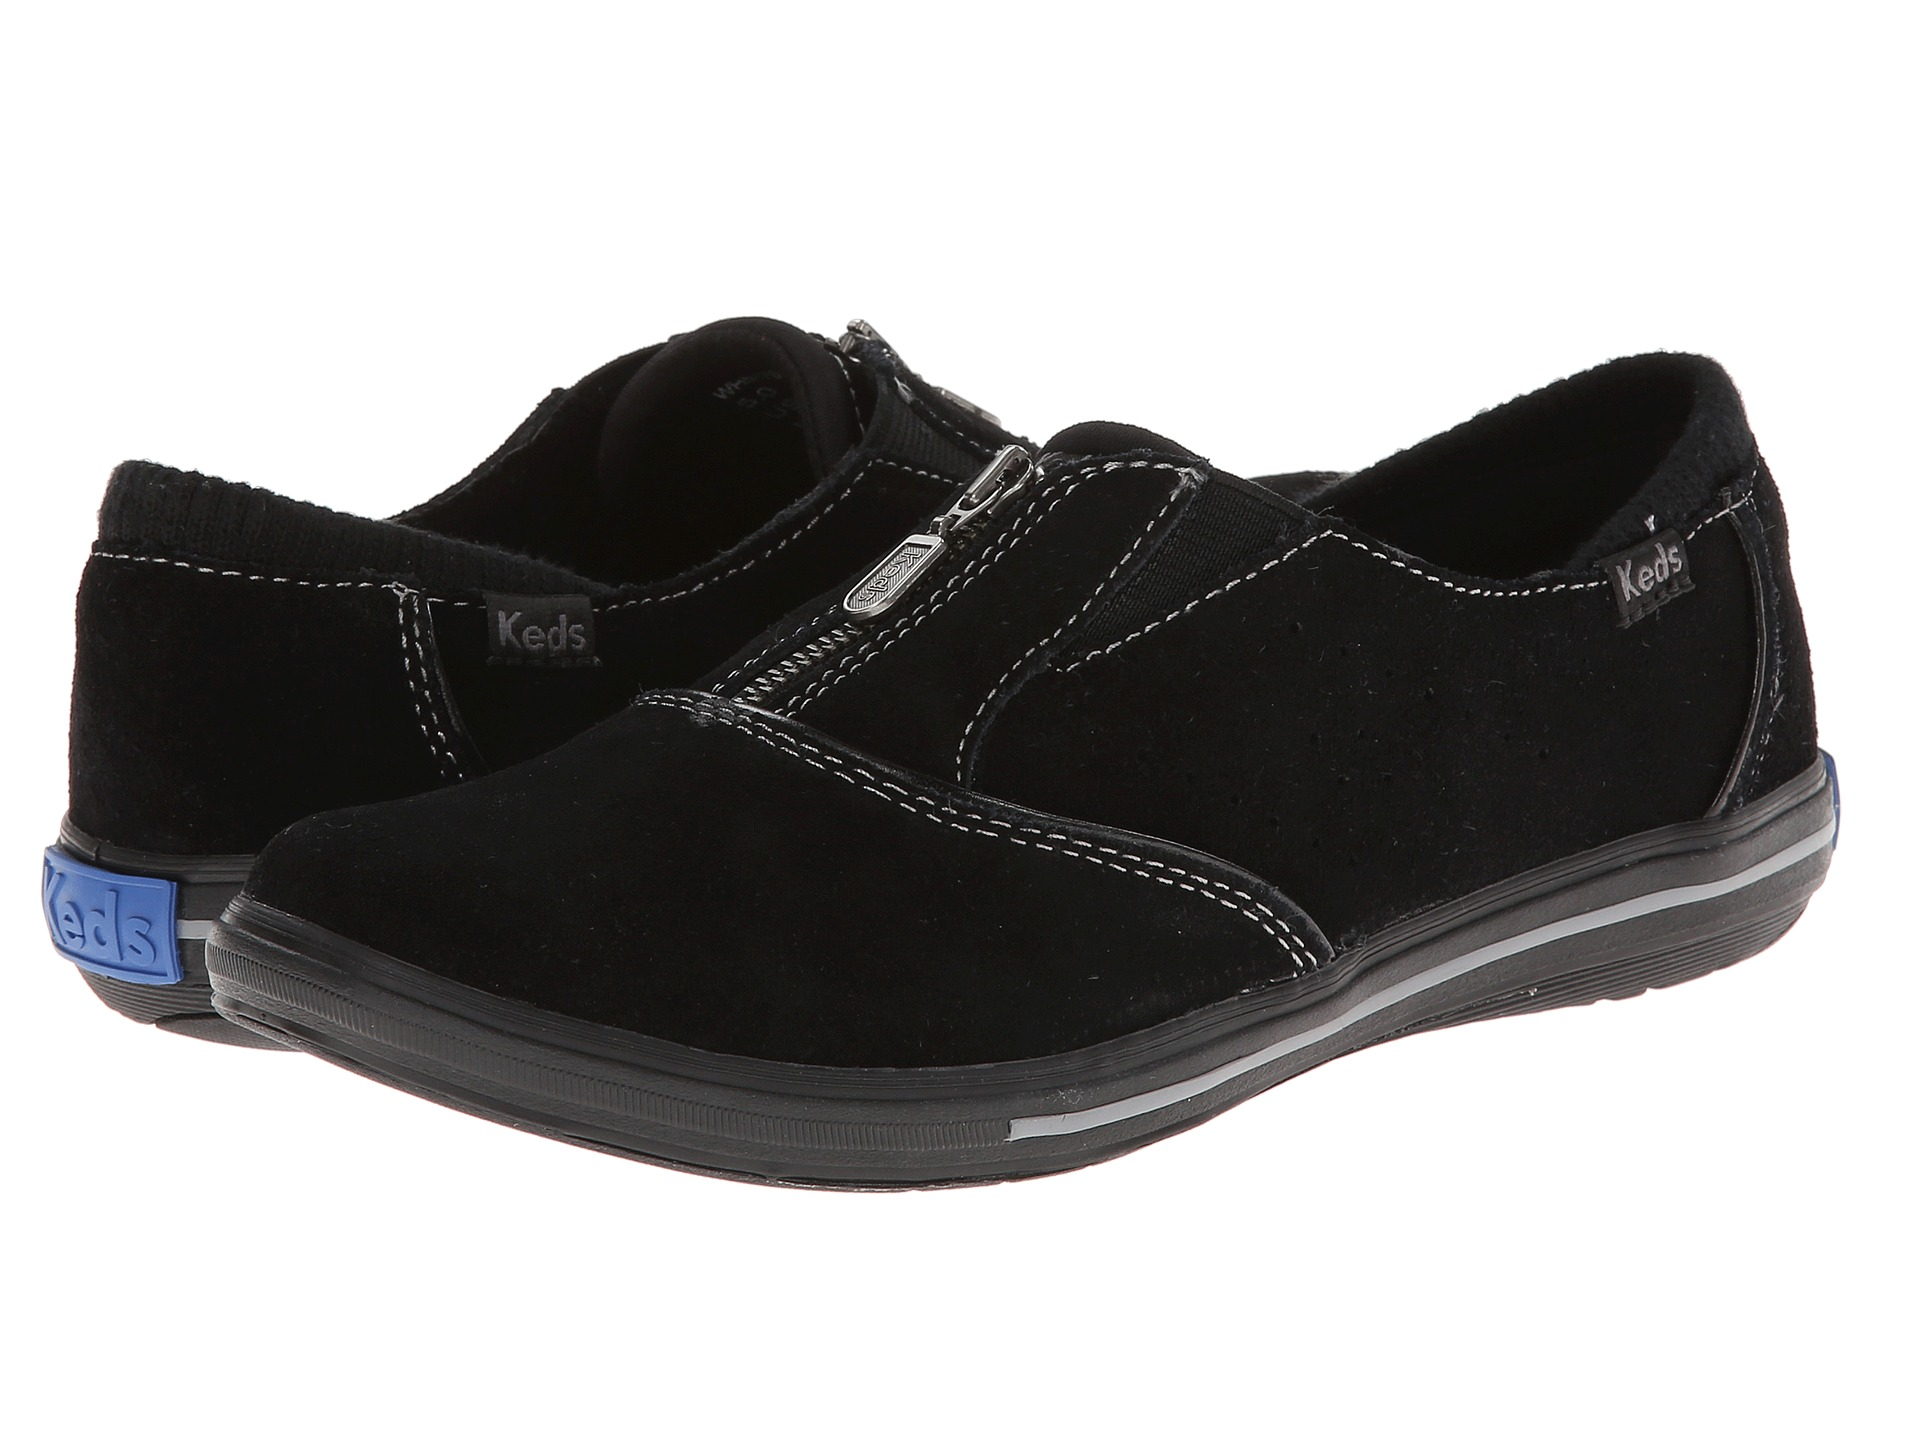 keds sneakers for women with zipper